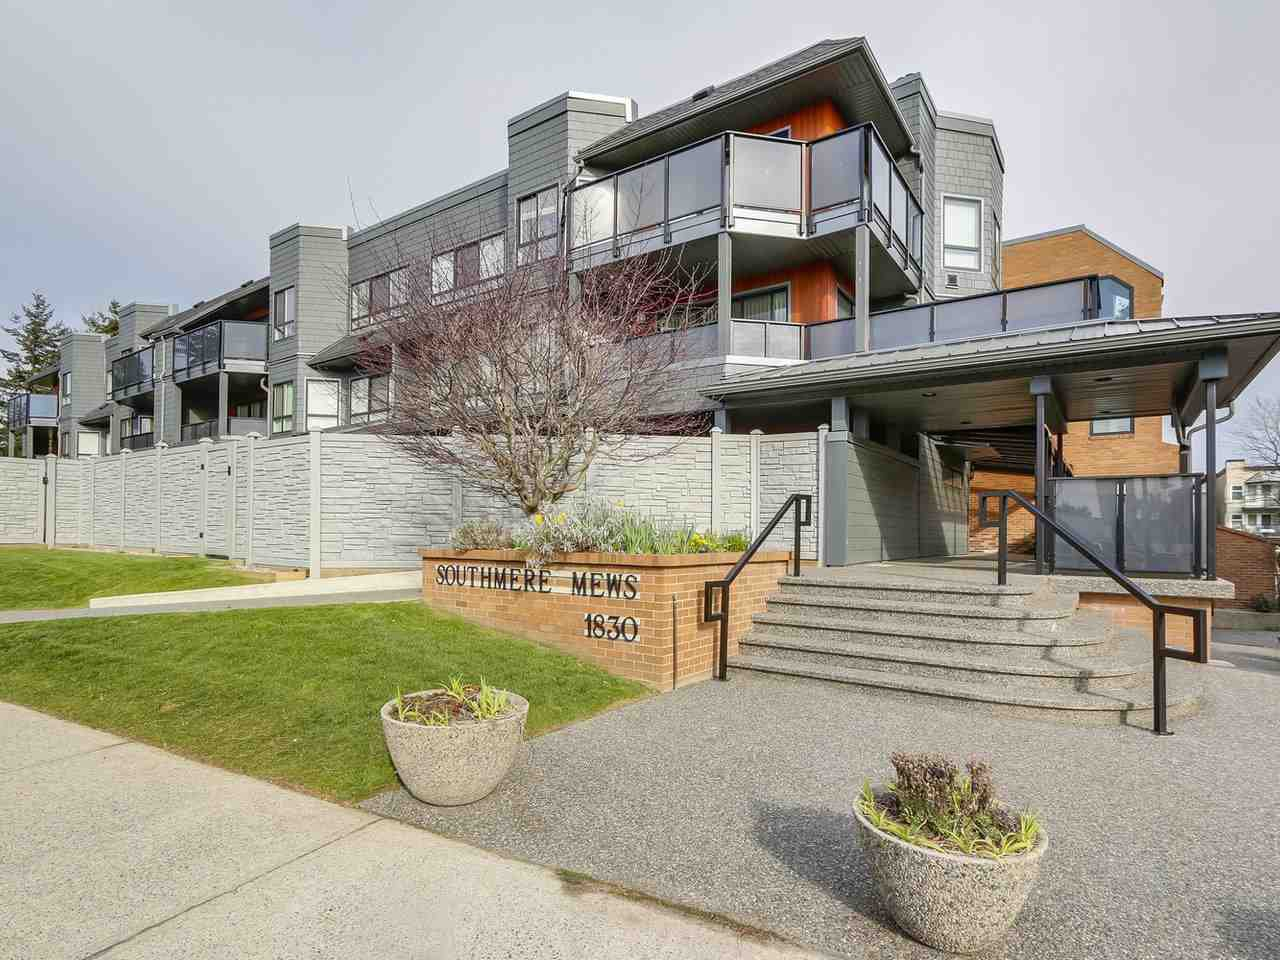 """Main Photo: 205 1830 E SOUTHMERE Crescent in Surrey: Sunnyside Park Surrey Condo for sale in """"Southmere Mews"""" (South Surrey White Rock)  : MLS®# R2249894"""